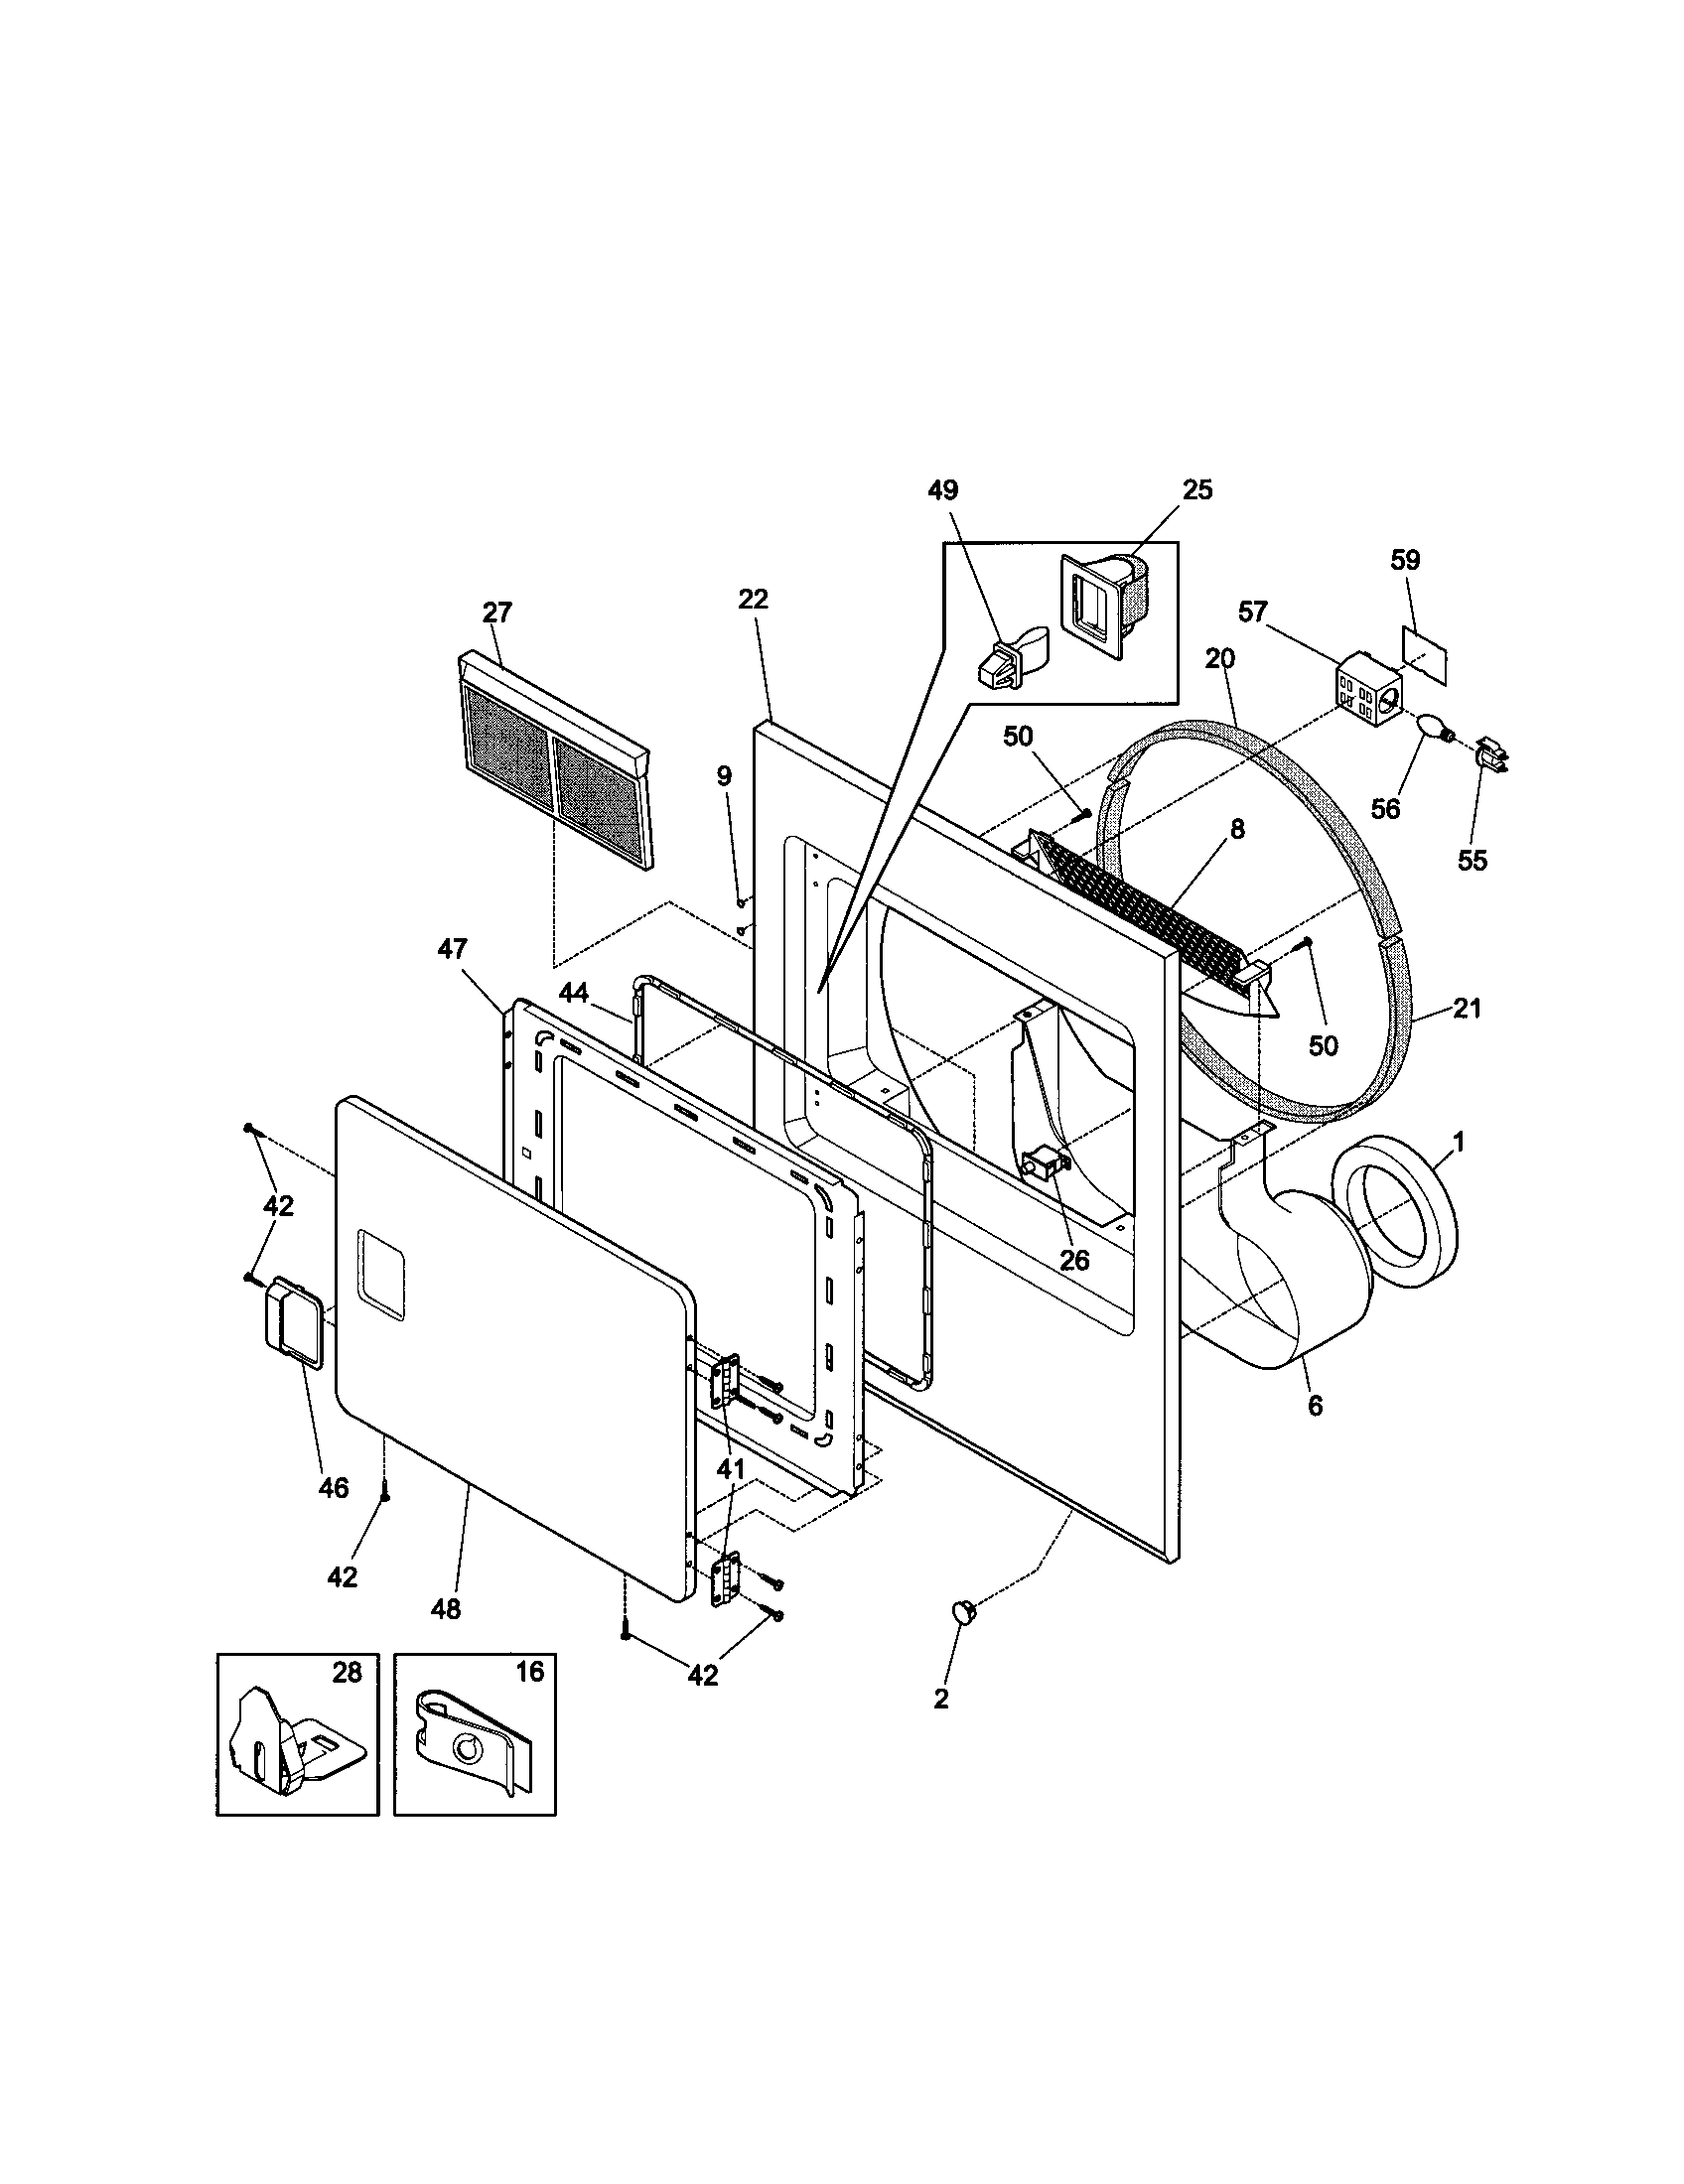 sears dryer wiring diagram 7way trailer 301 moved permanently